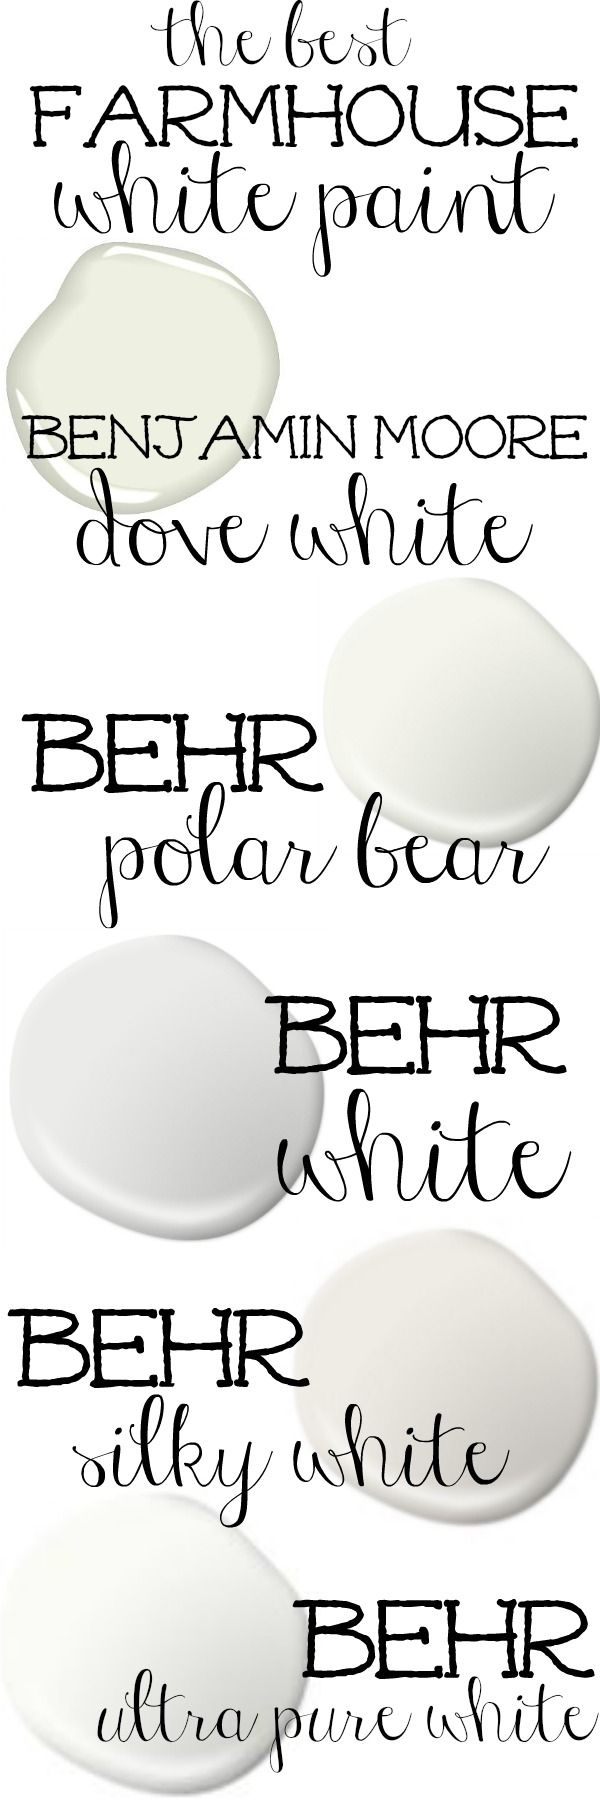 The best white paint colors for a farmhouse exterior. Great for farmhouse & cottage style homes!